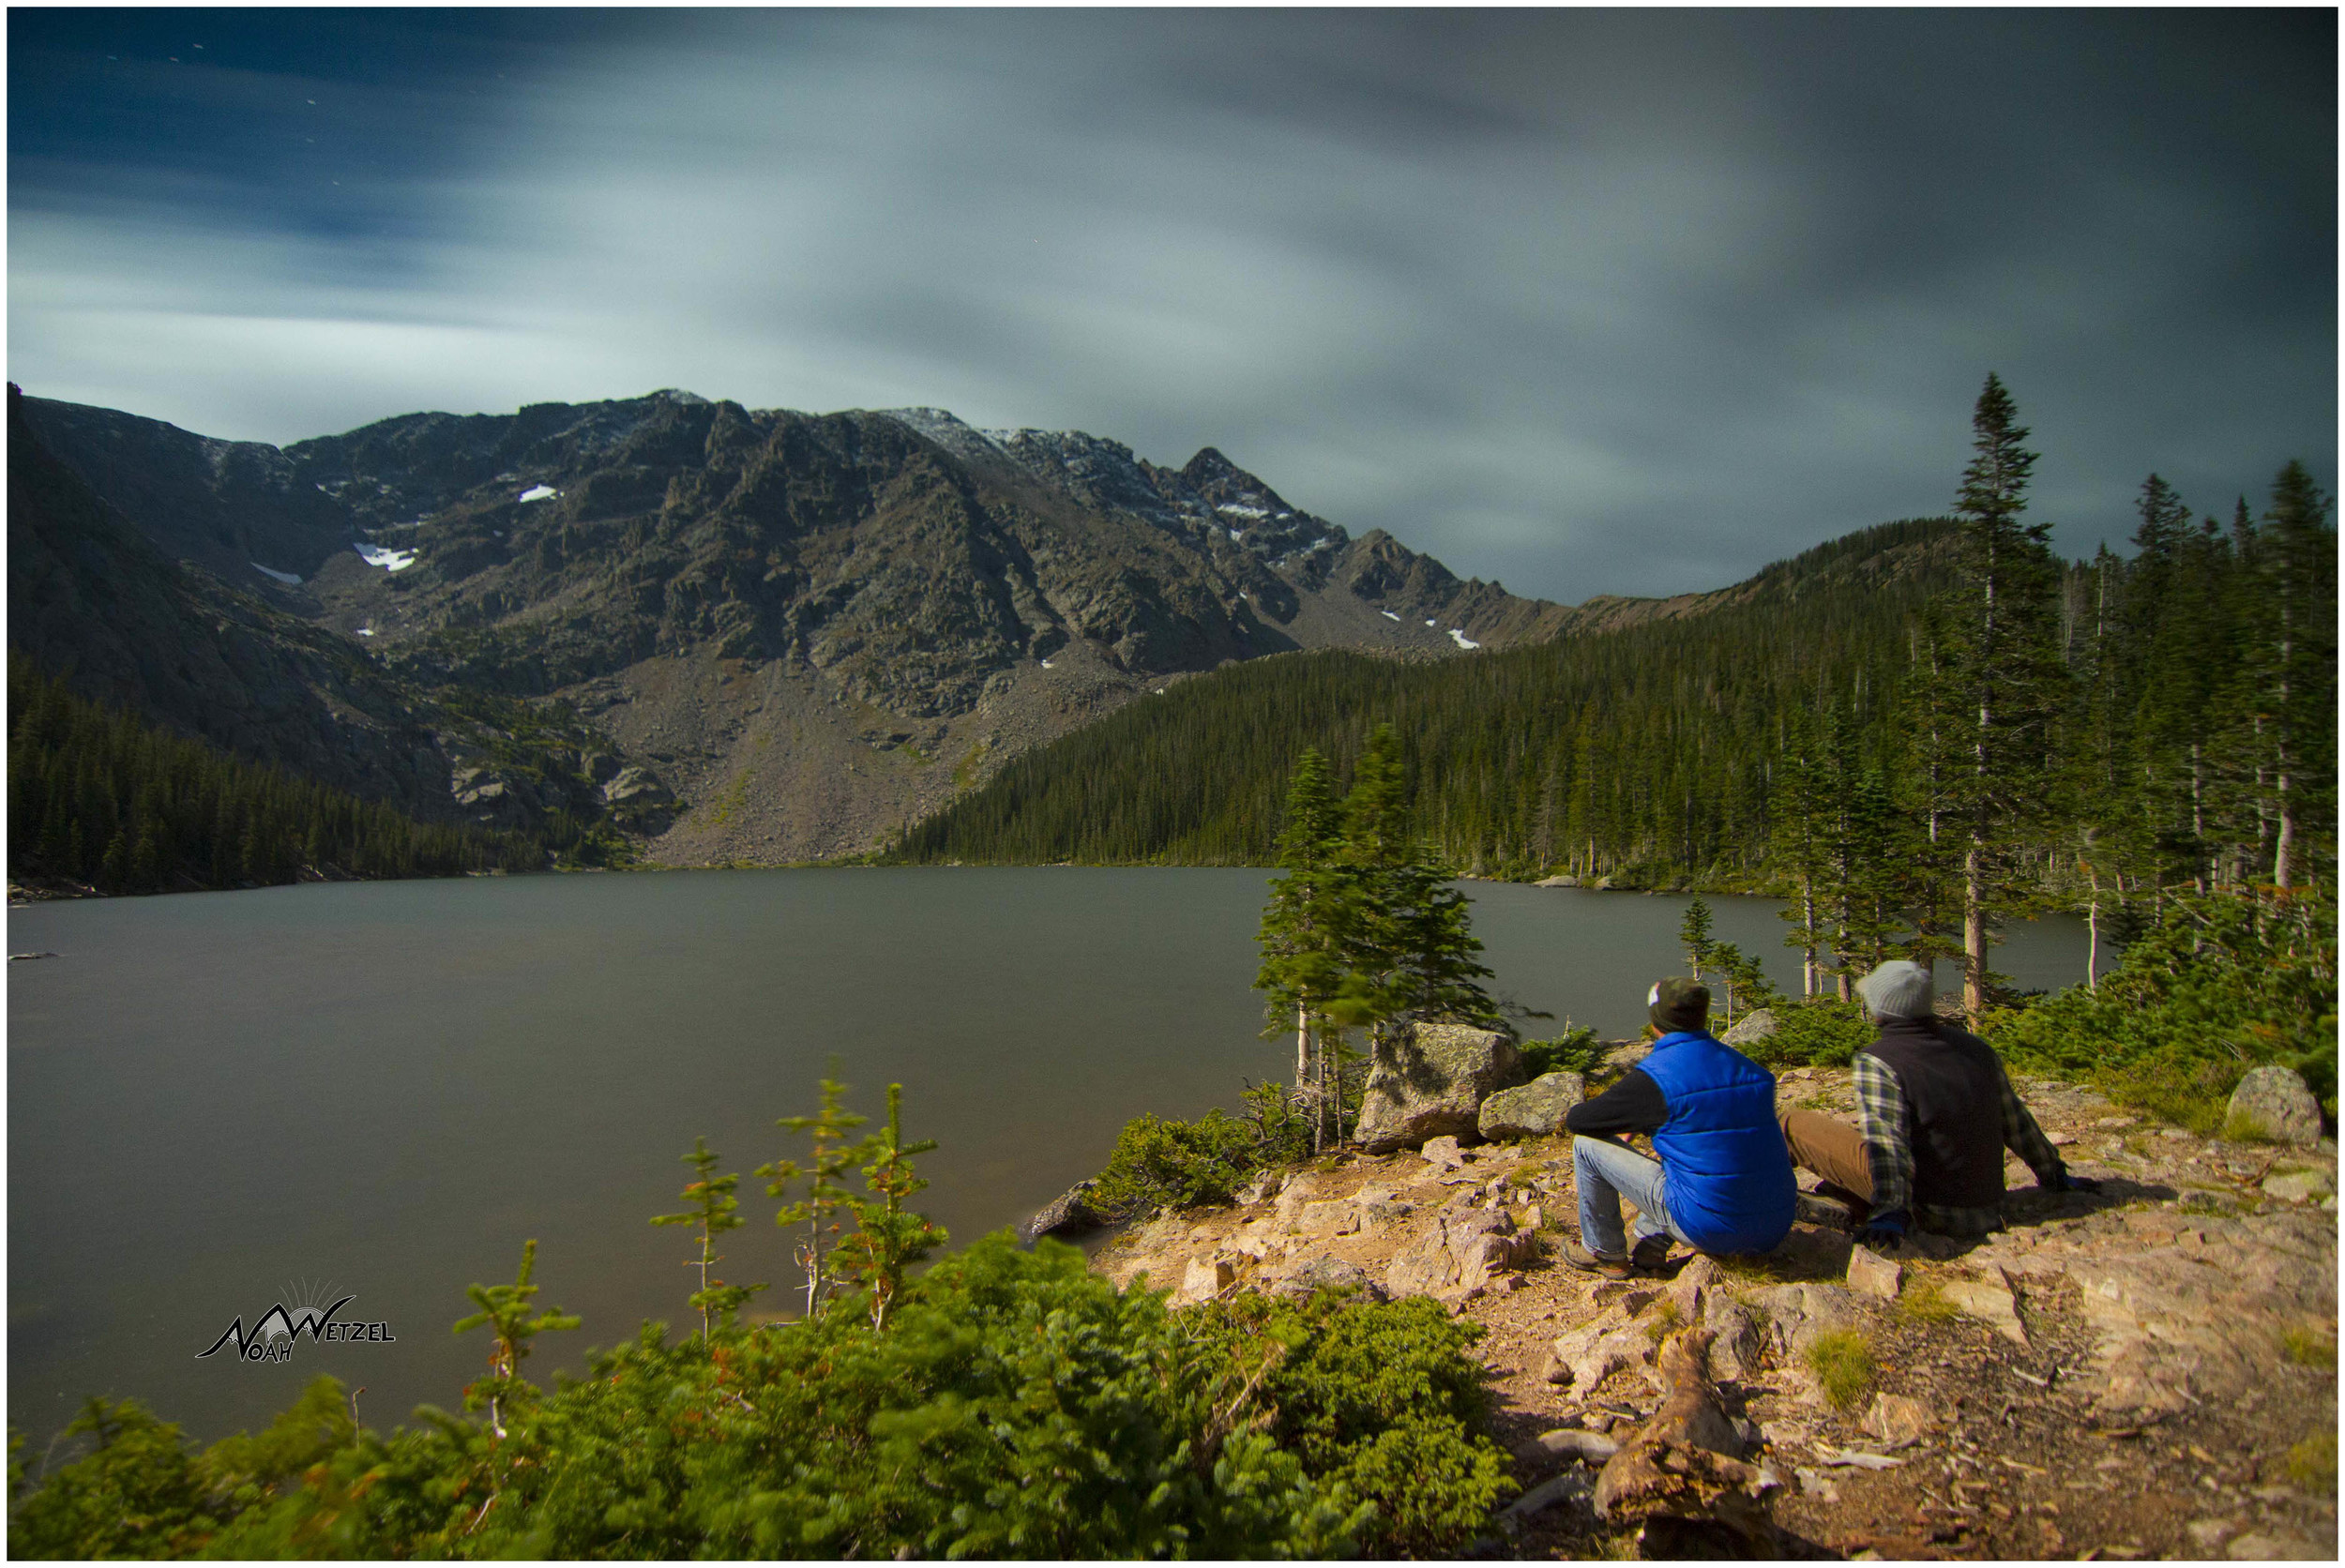 Ben and I overlooking Upper Cataract Lake underneath our massive Super Moon nightlight.